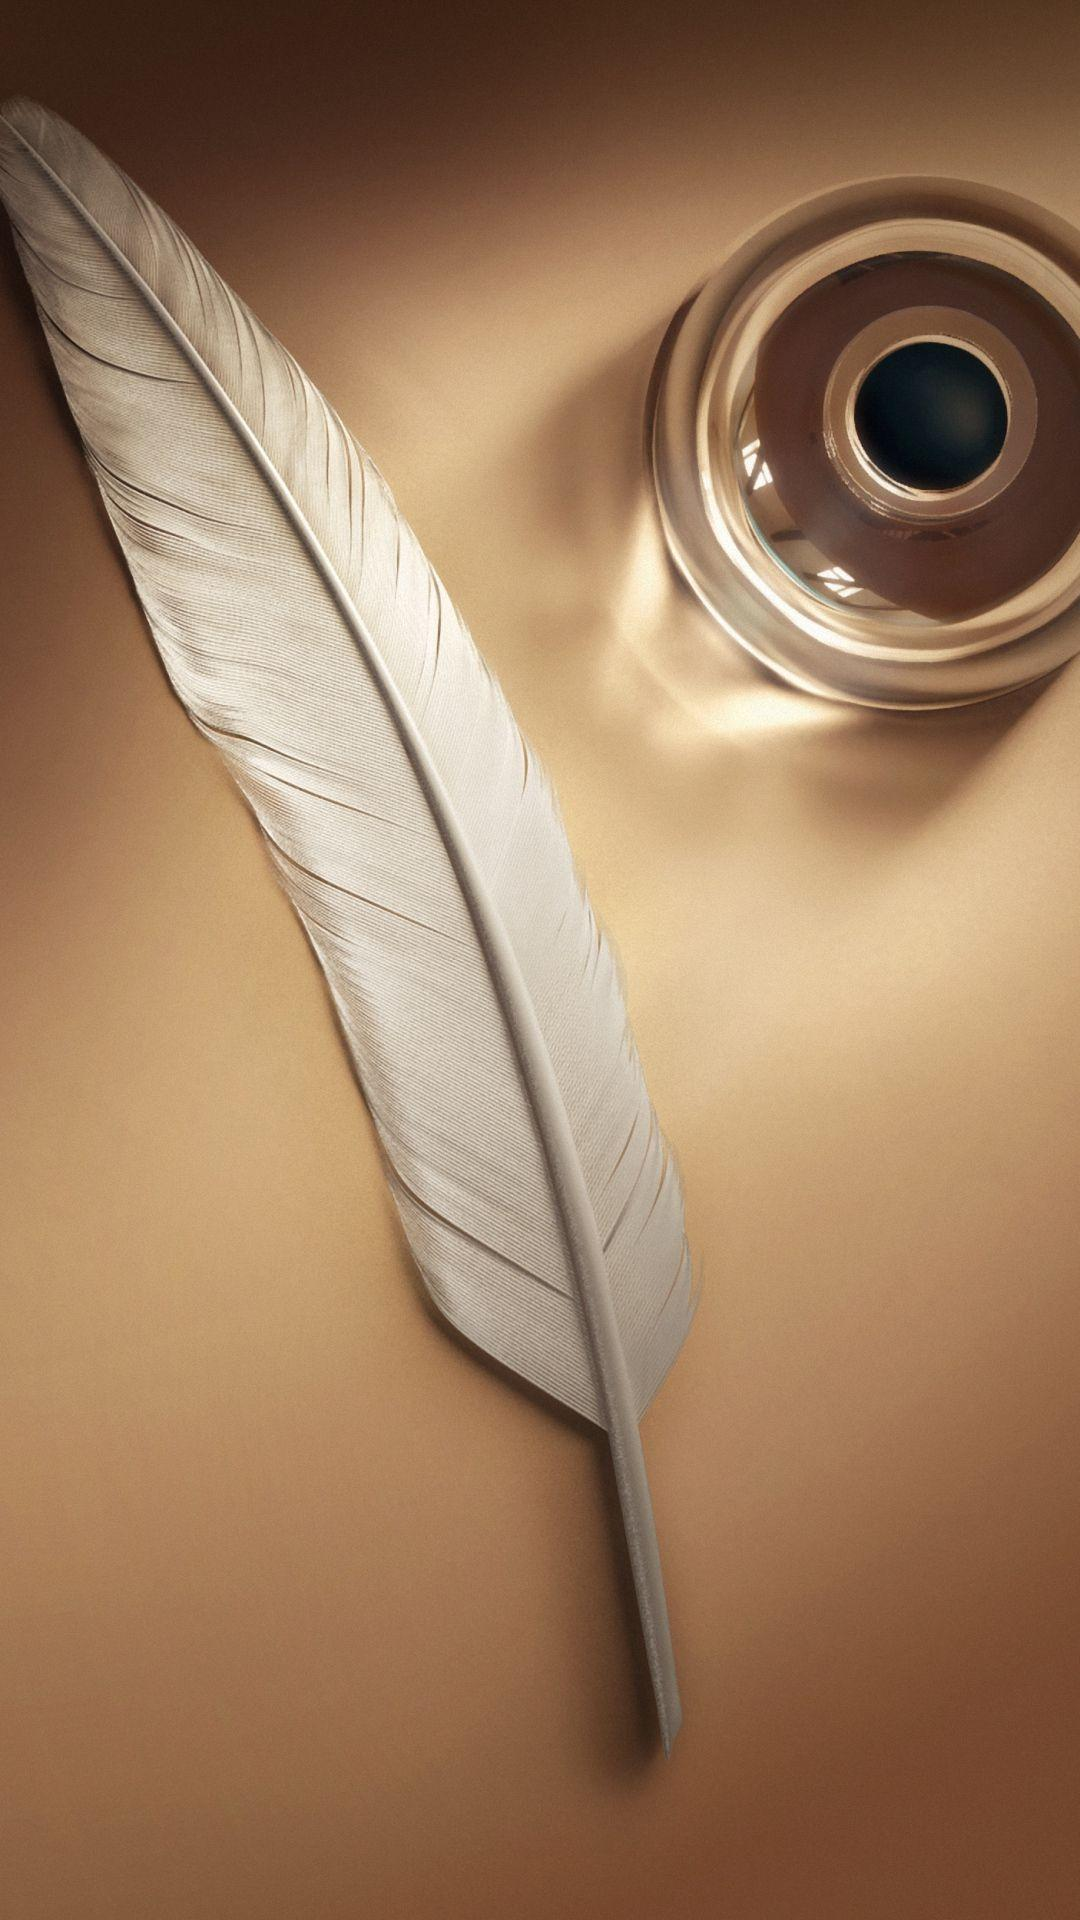 Samsung Galaxy Feather Wallpapers Wallpaper Cave